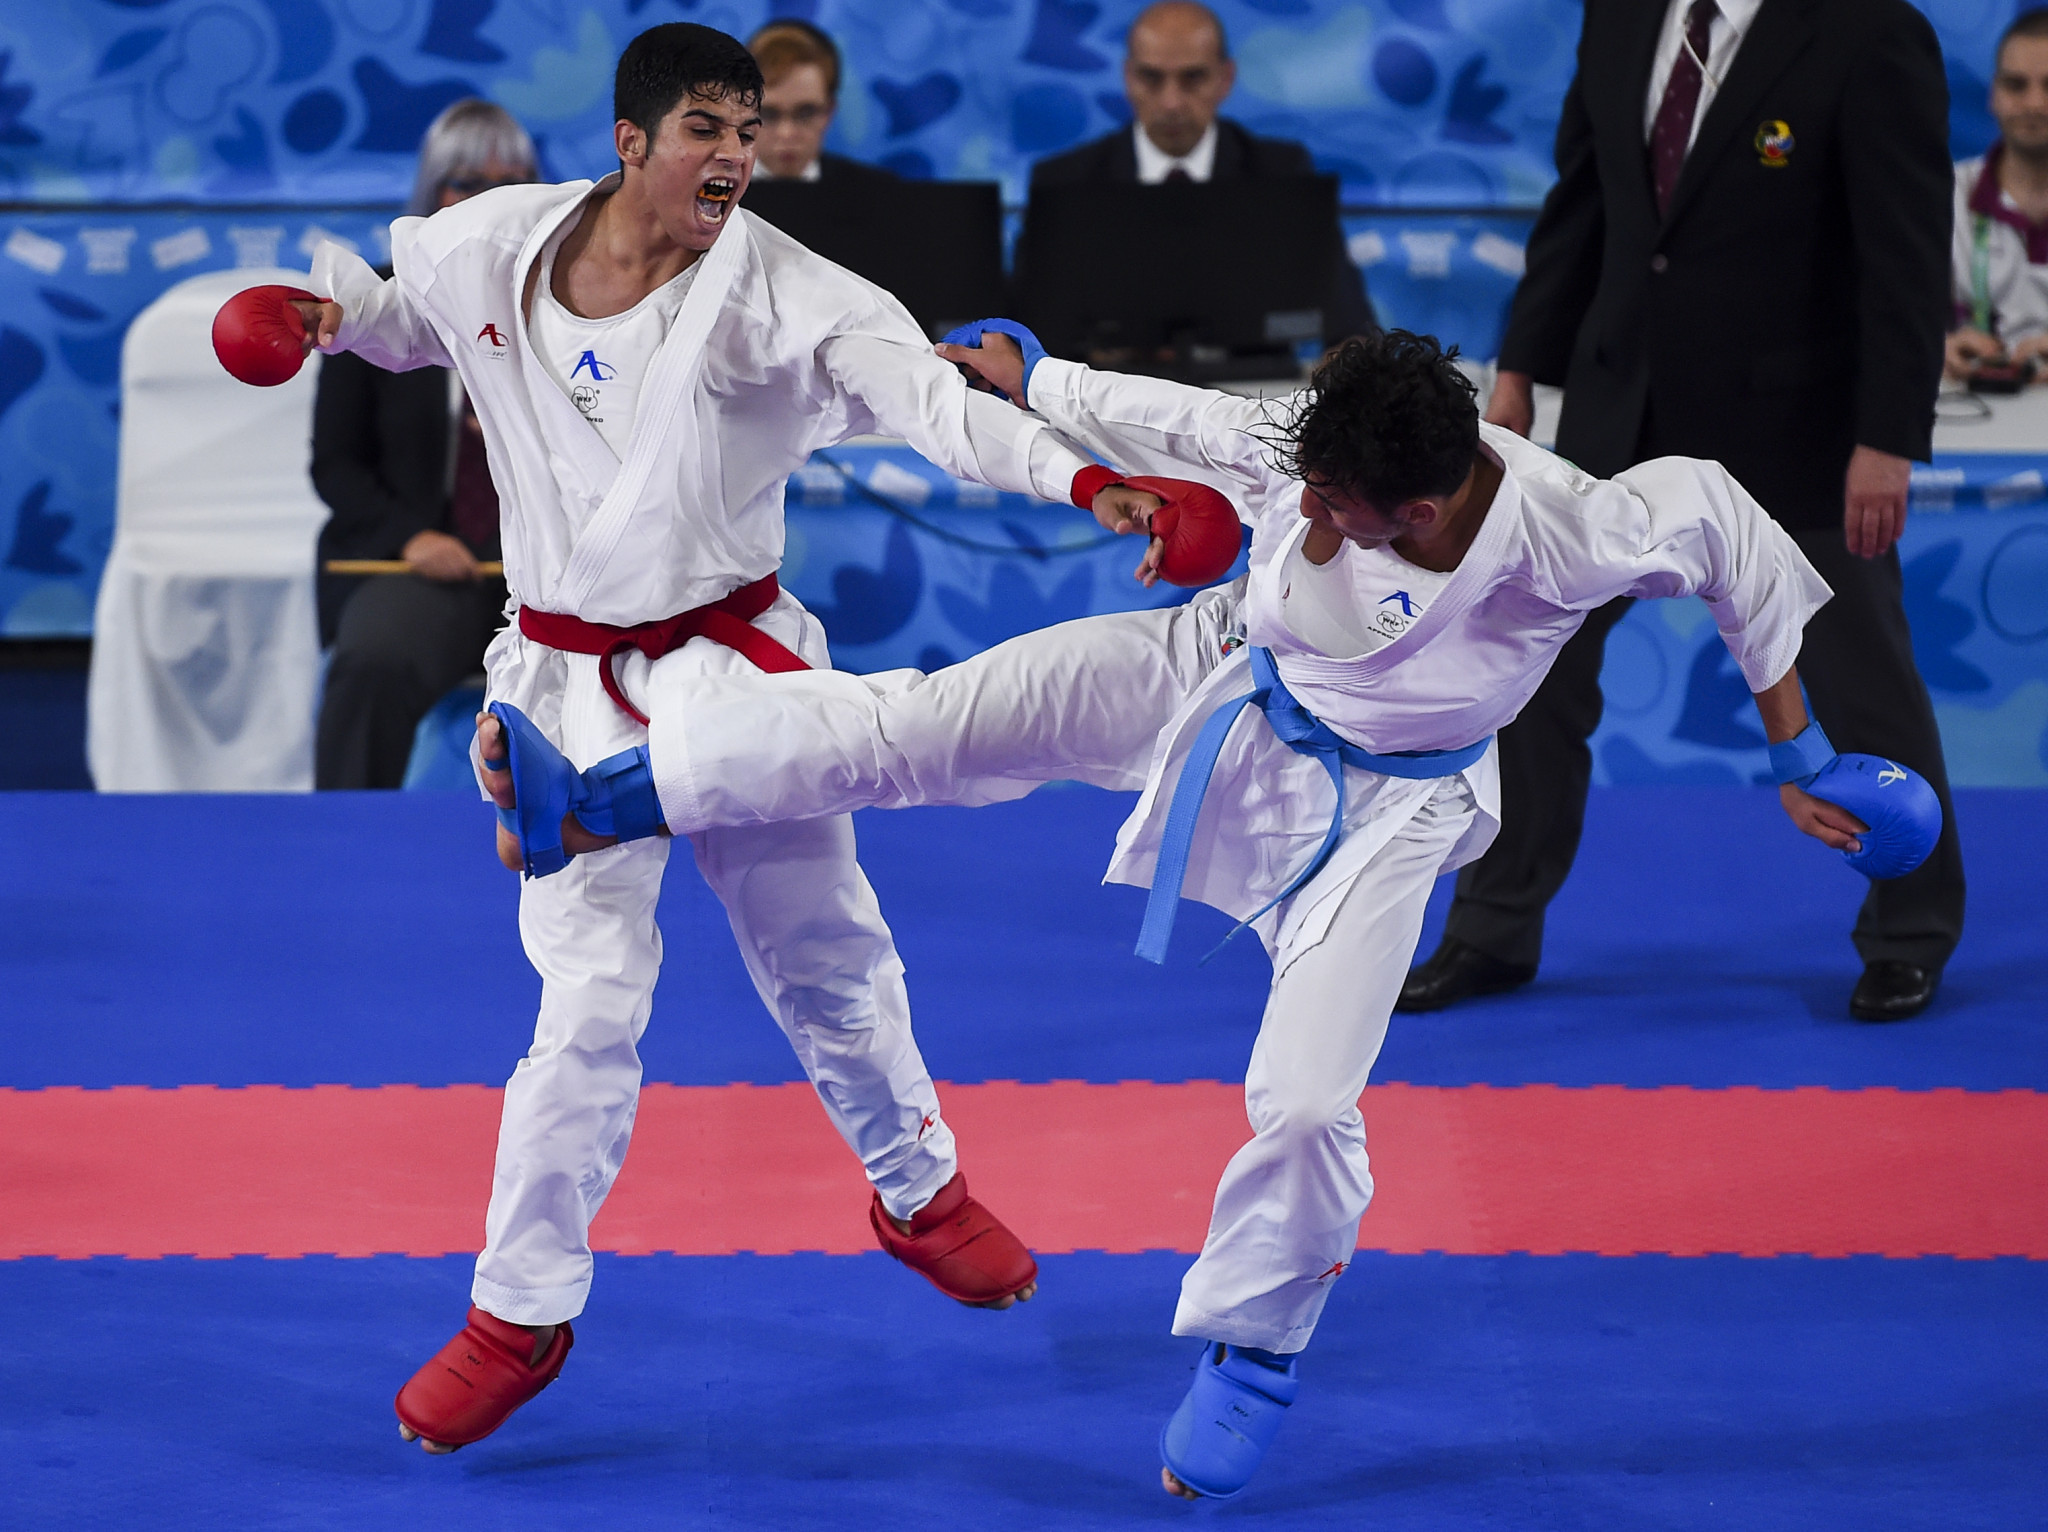 Navid Mohammadi beat Morocco's Nabil Ech-Chaabi in the boys' over-68kg final at the Buenos Aires 2018 Summer Youth Olympic Games ©Getty Images